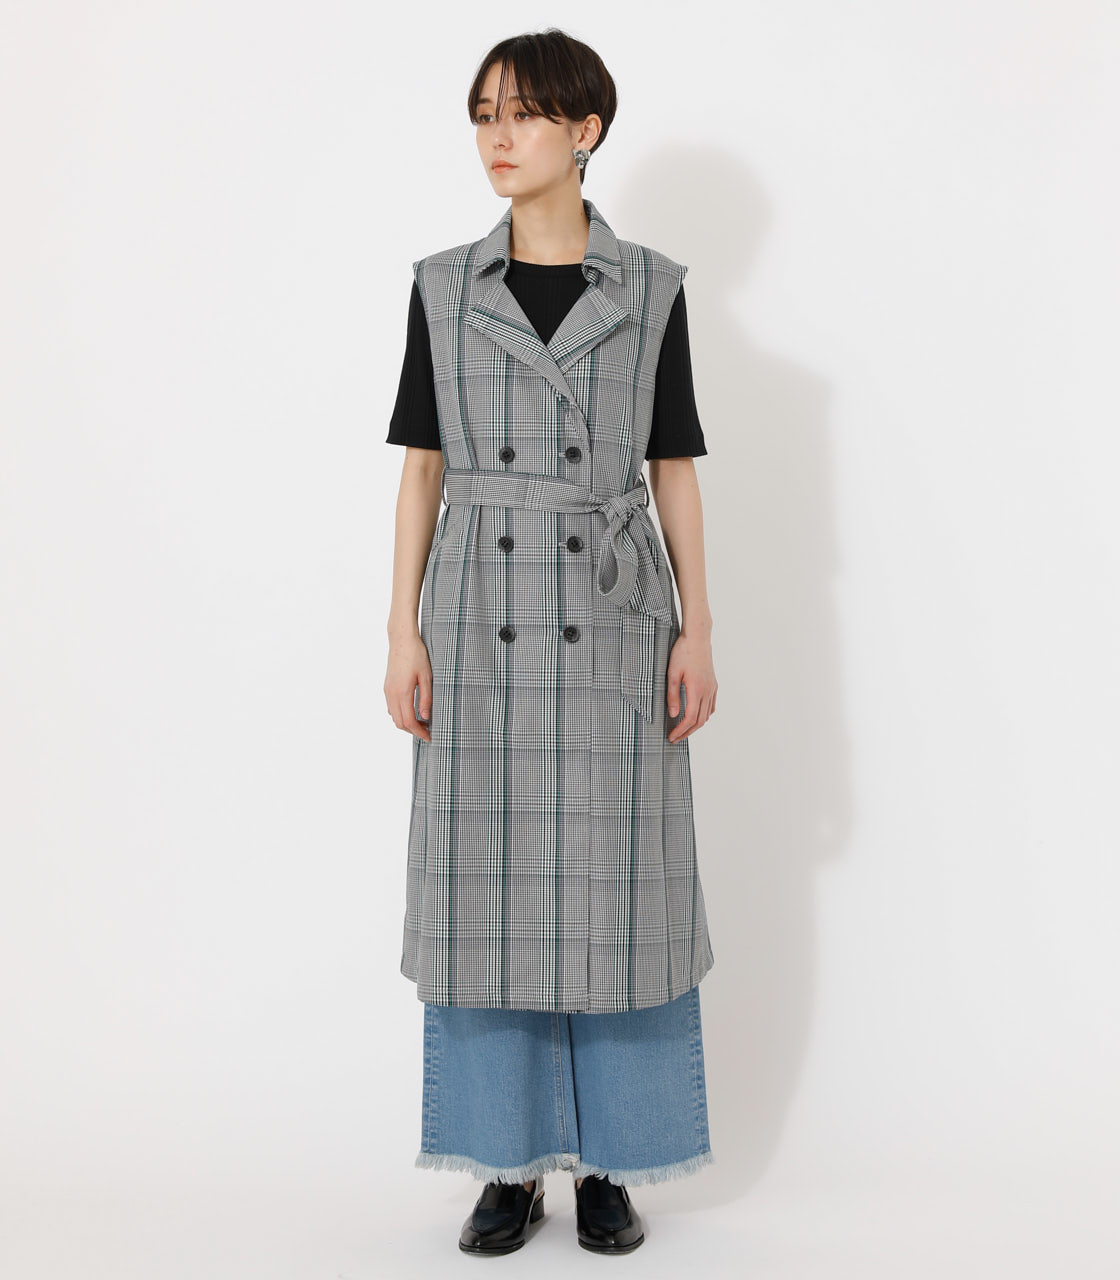 LOOSE TRENCH VEST/ルーズトレンチベスト 詳細画像 柄GRY 4